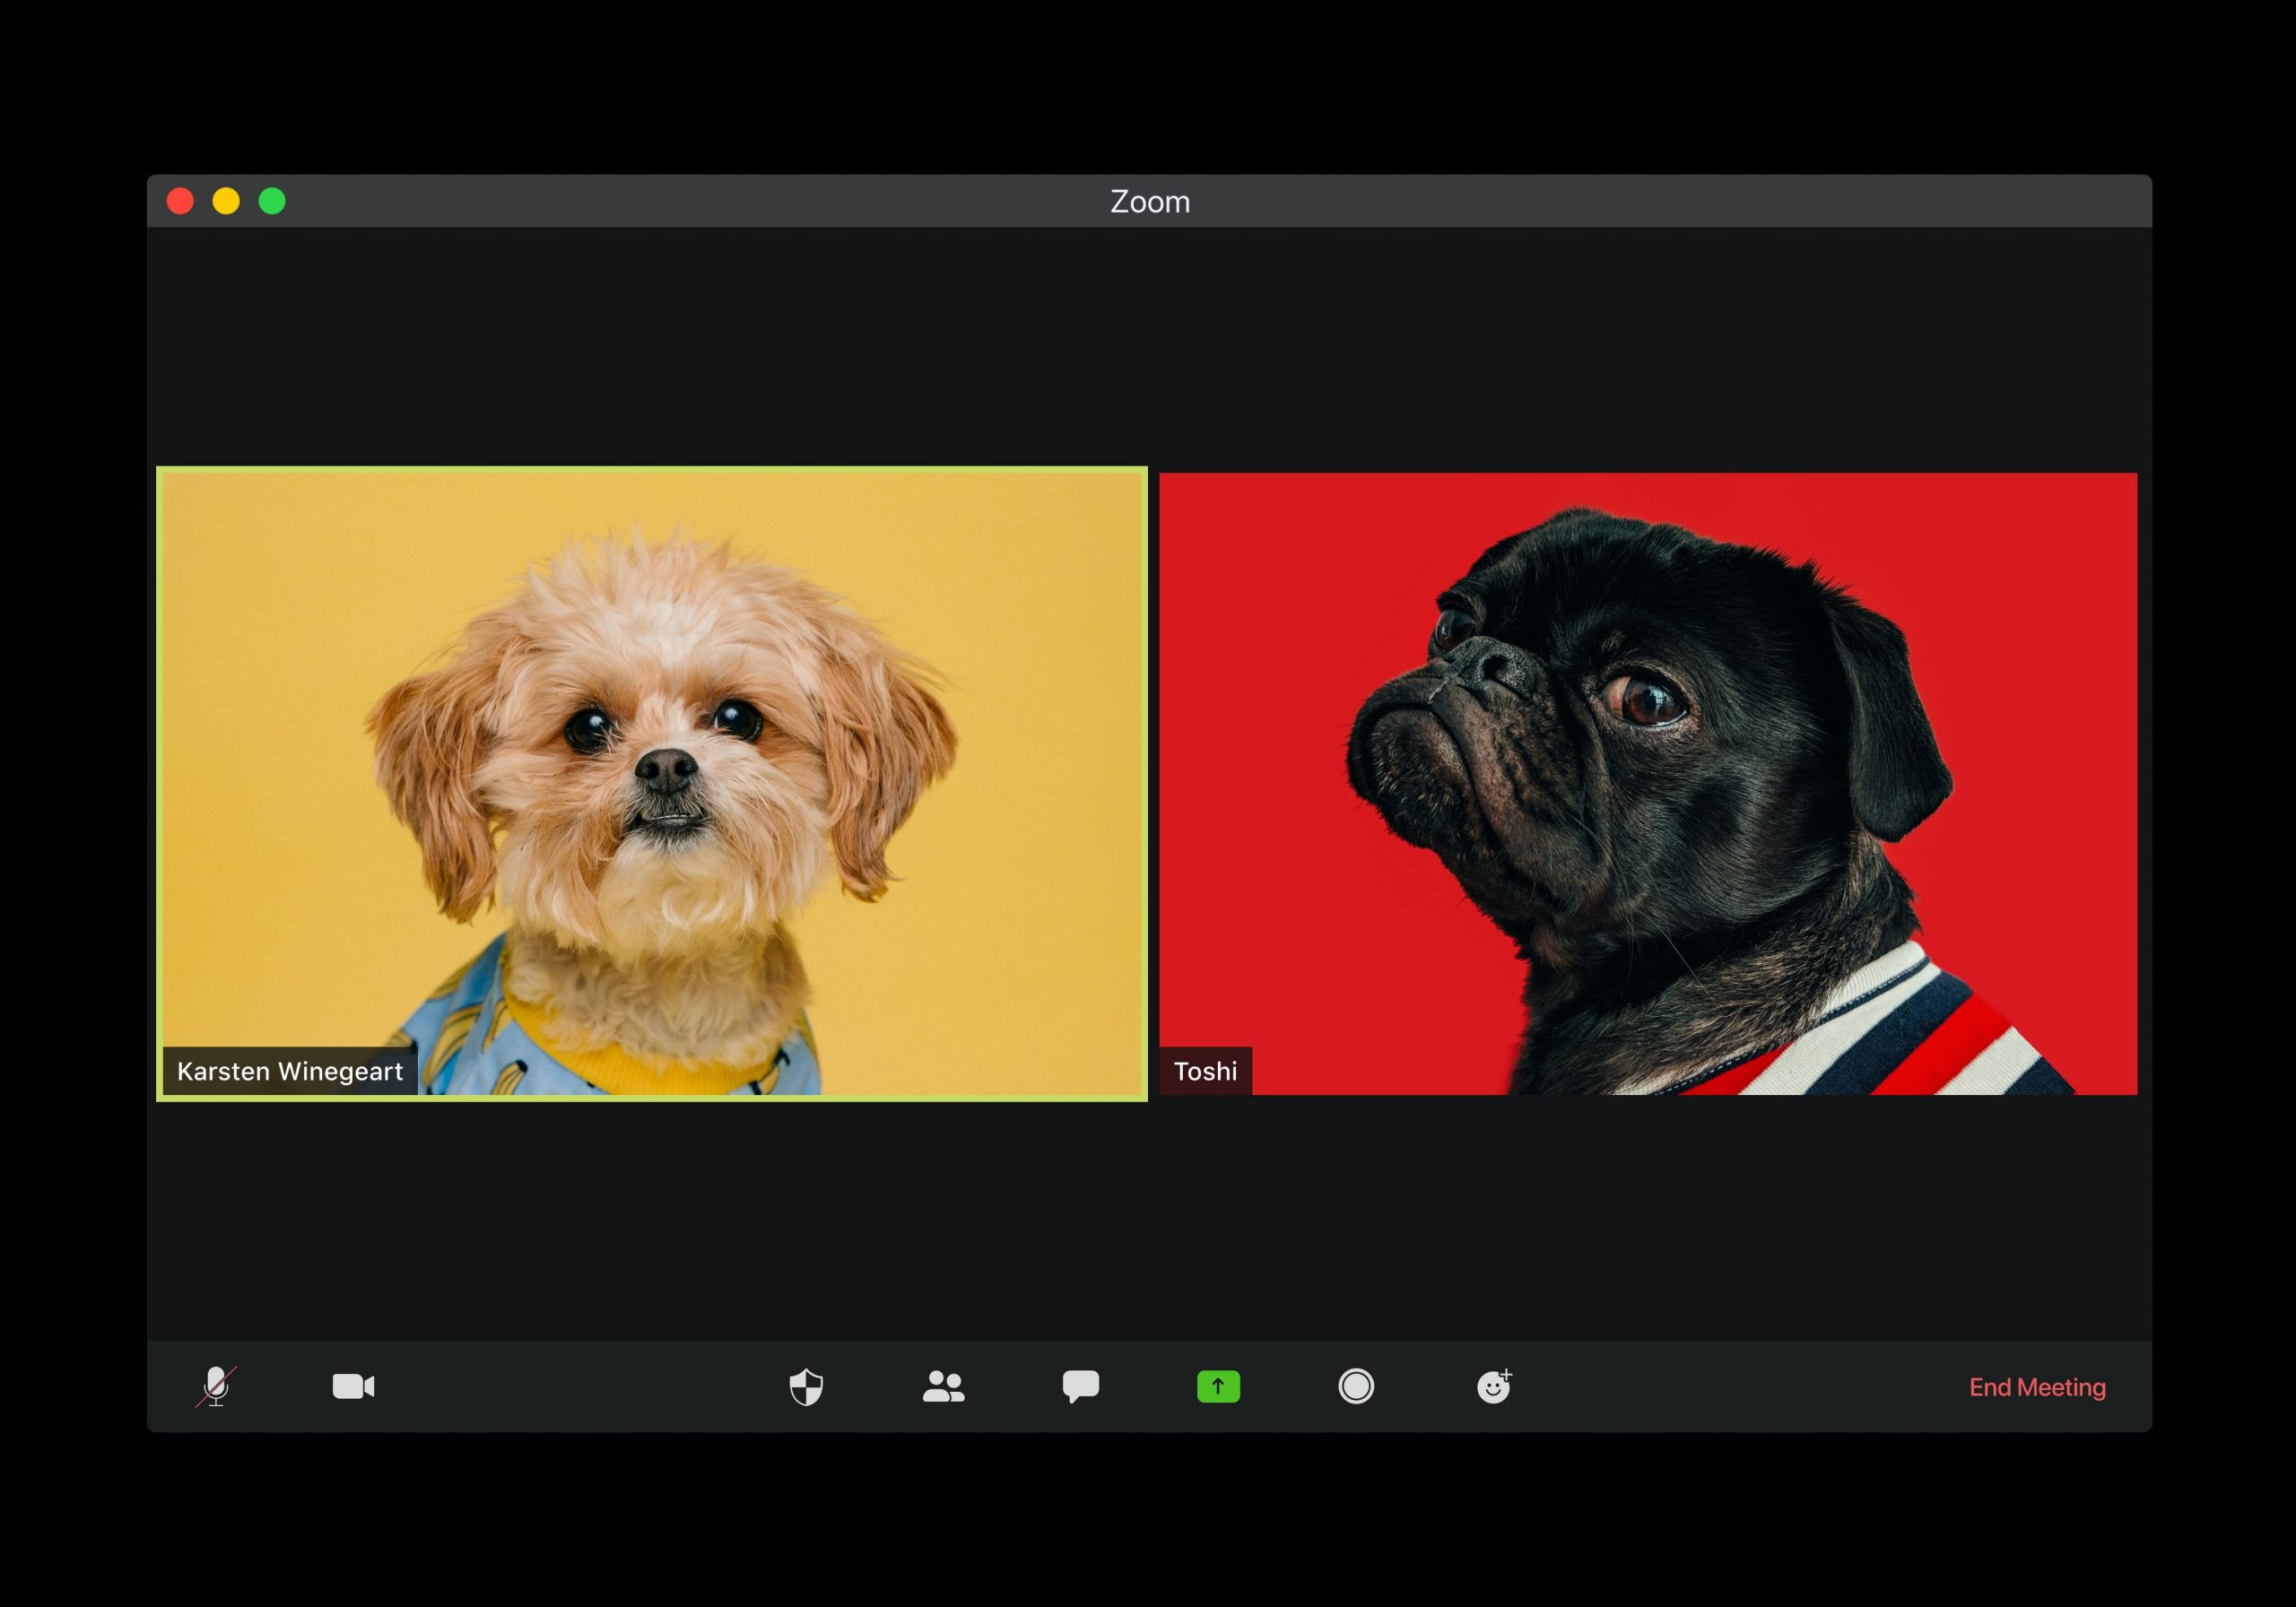 computer screen with Zoom meeting running but picture sof dogs instead of video feeds